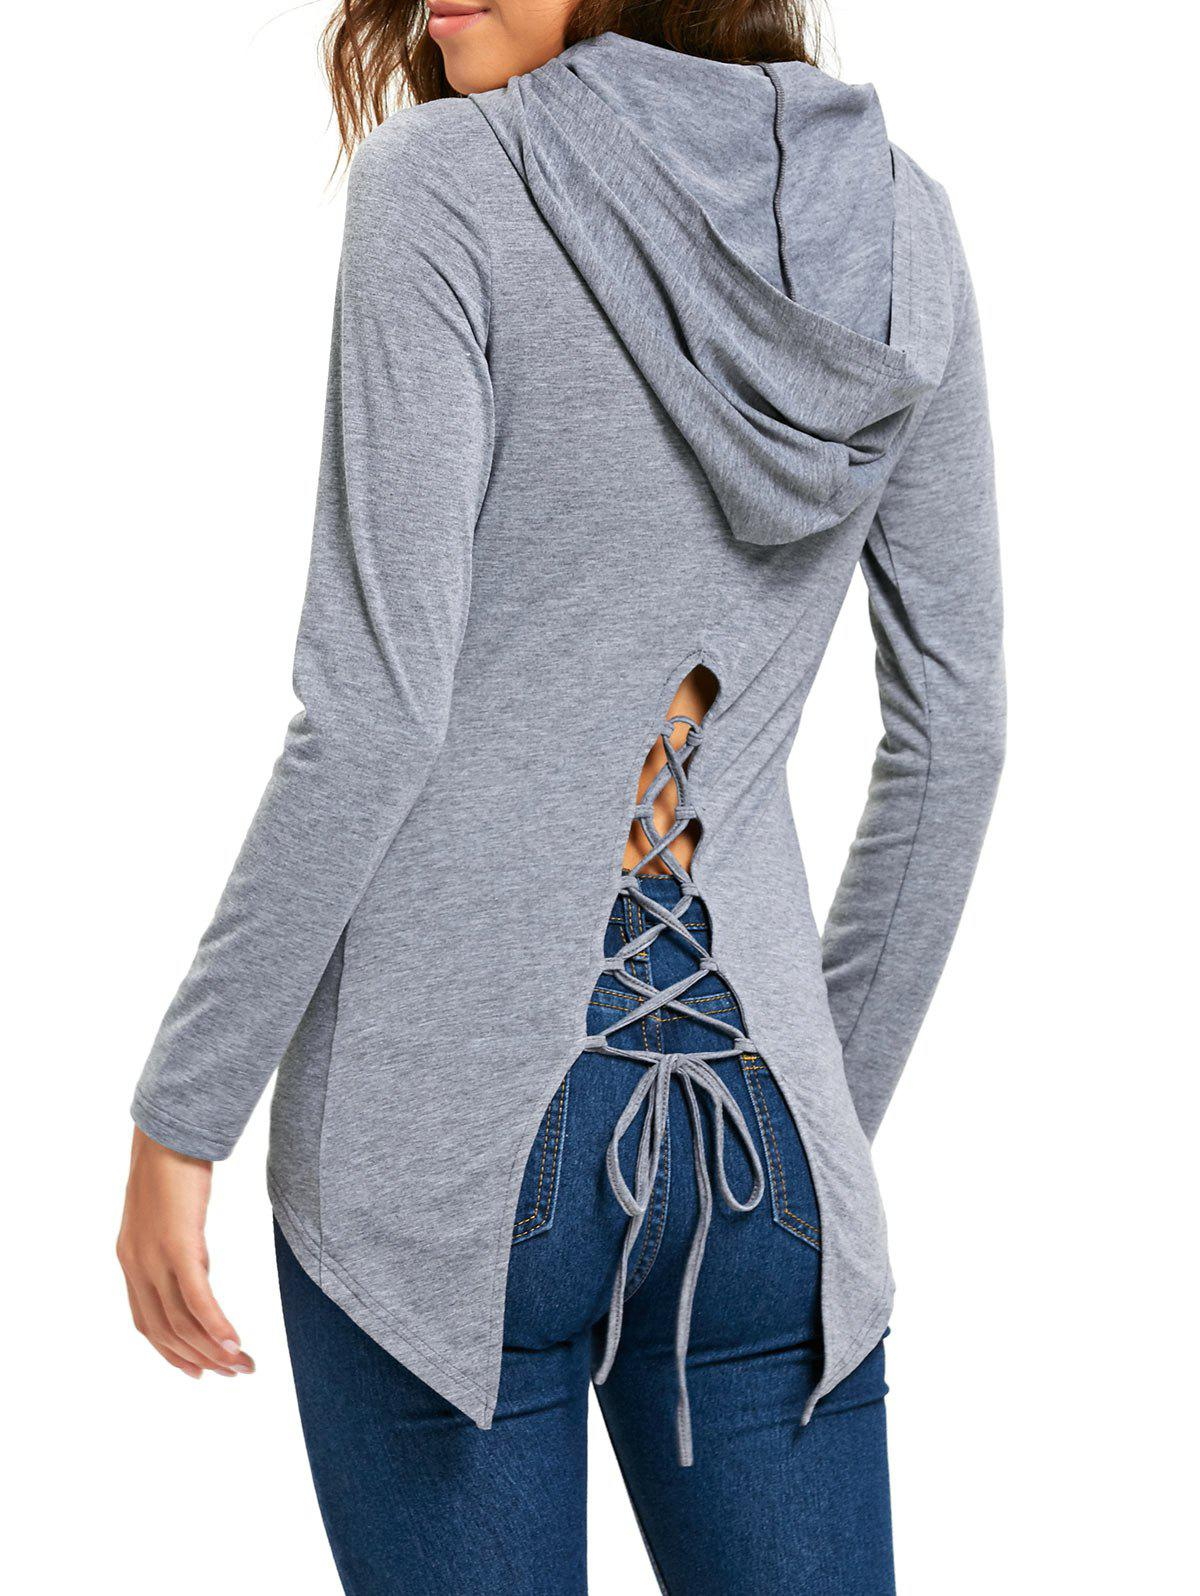 High Low Lace Up Hooded Tunic T-shirtWOMEN<br><br>Size: M; Color: GRAY; Material: Polyester,Spandex; Shirt Length: Regular; Sleeve Length: Full; Collar: Hooded; Style: Fashion; Pattern Type: Solid; Season: Fall,Spring; Weight: 0.3000kg; Package Contents: 1 x Shirt;